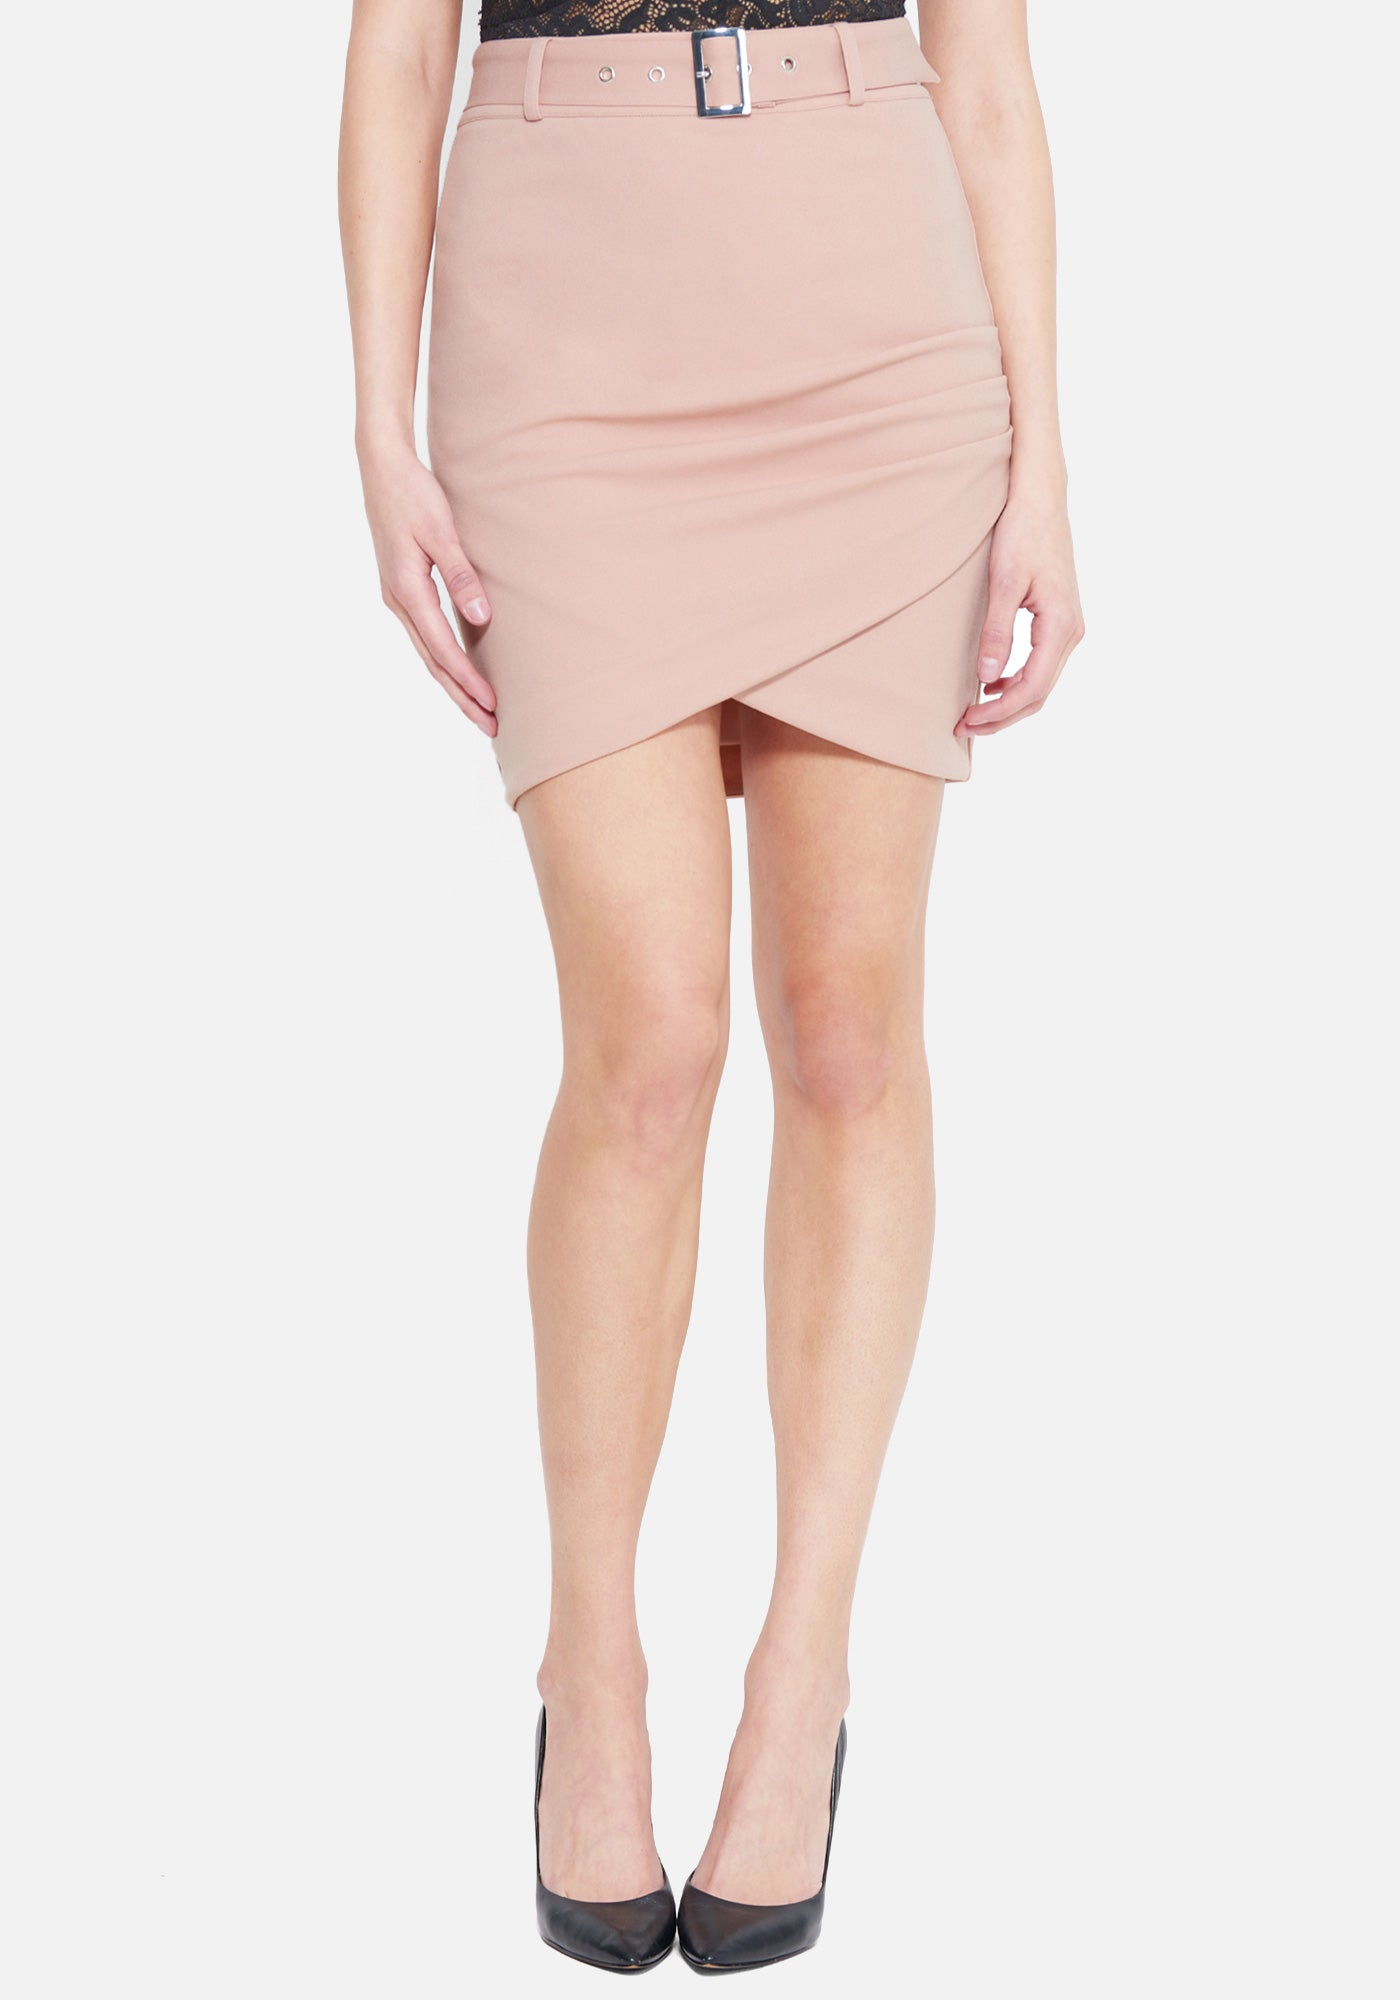 Bebe Women's Belted Wrap Skirt, Size 00 in CAMEO ROSE Polyester